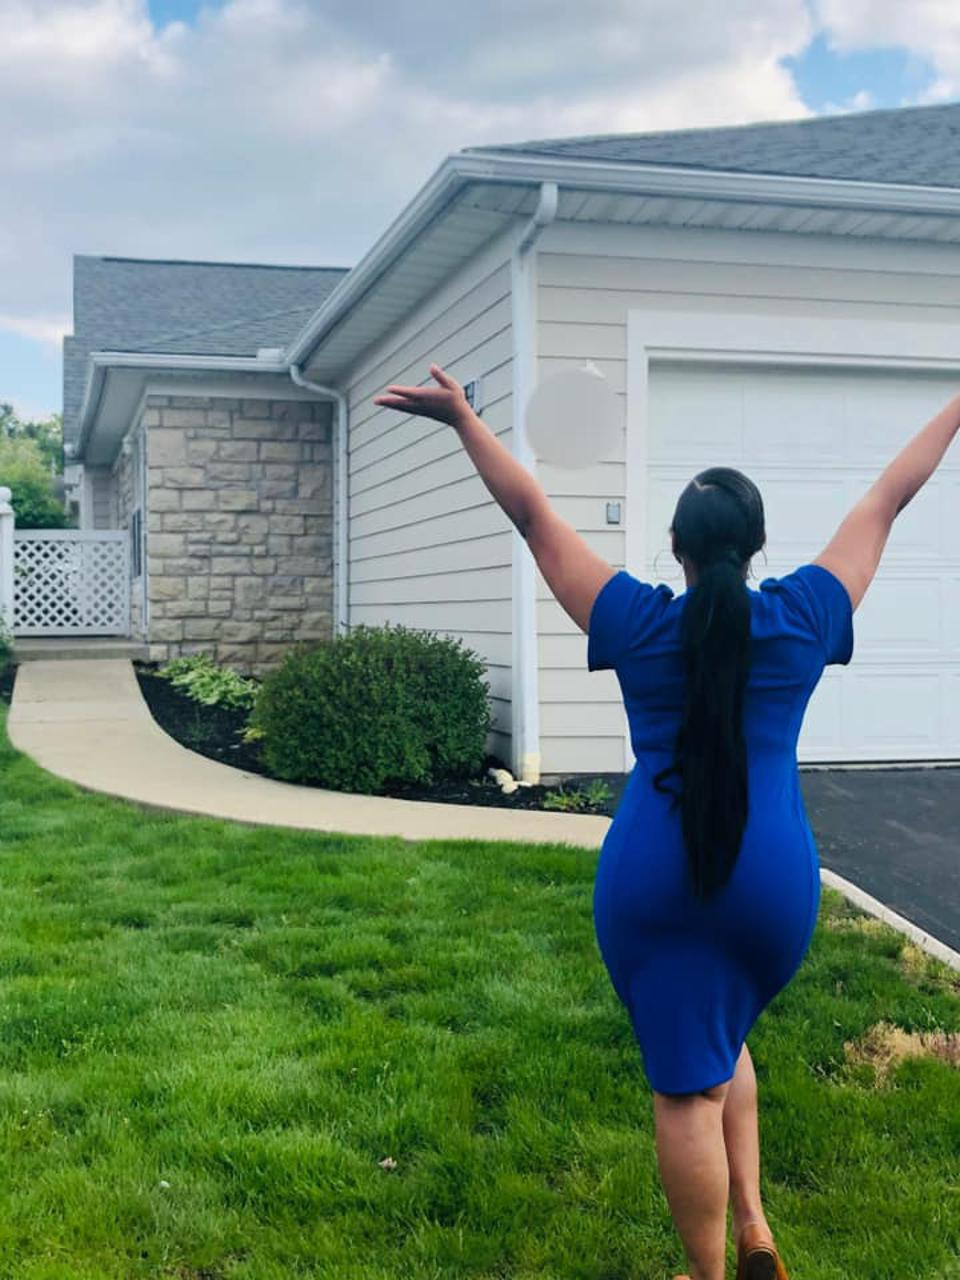 It took four years and a lot of hard work, but Chloe Green, 19, made her dream of homeownership a reality when she closed on her first home in April.